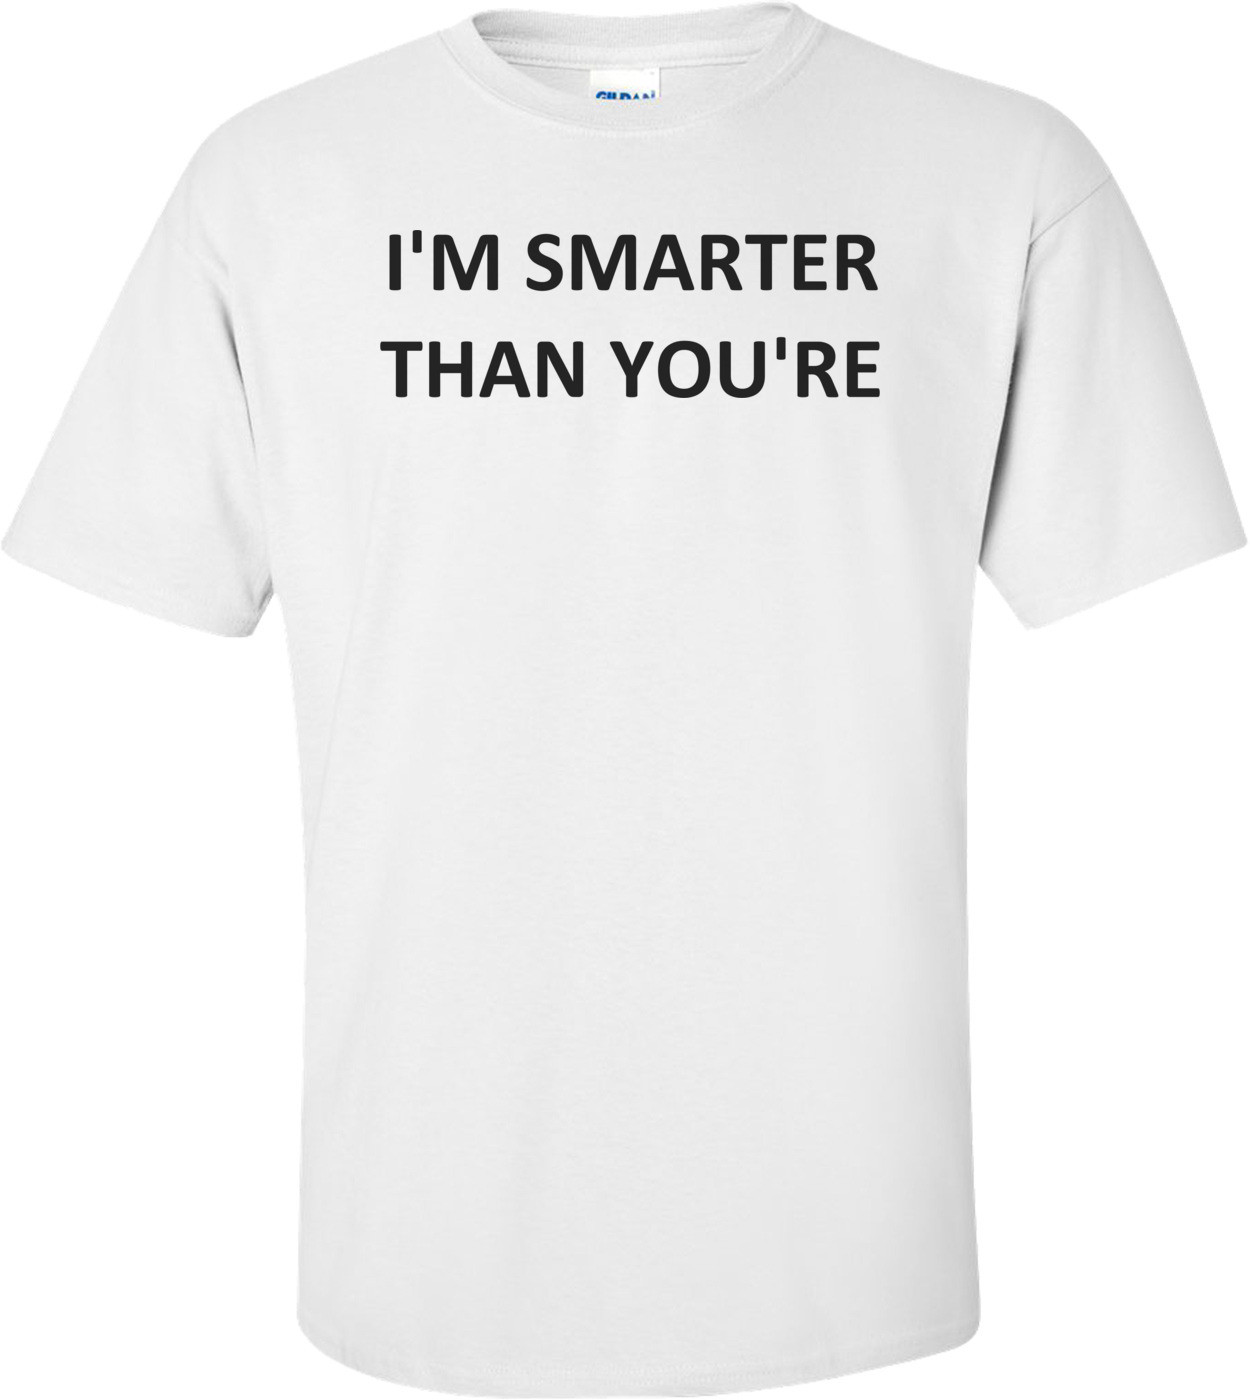 I'M SMARTER THAN YOU'RE Shirt